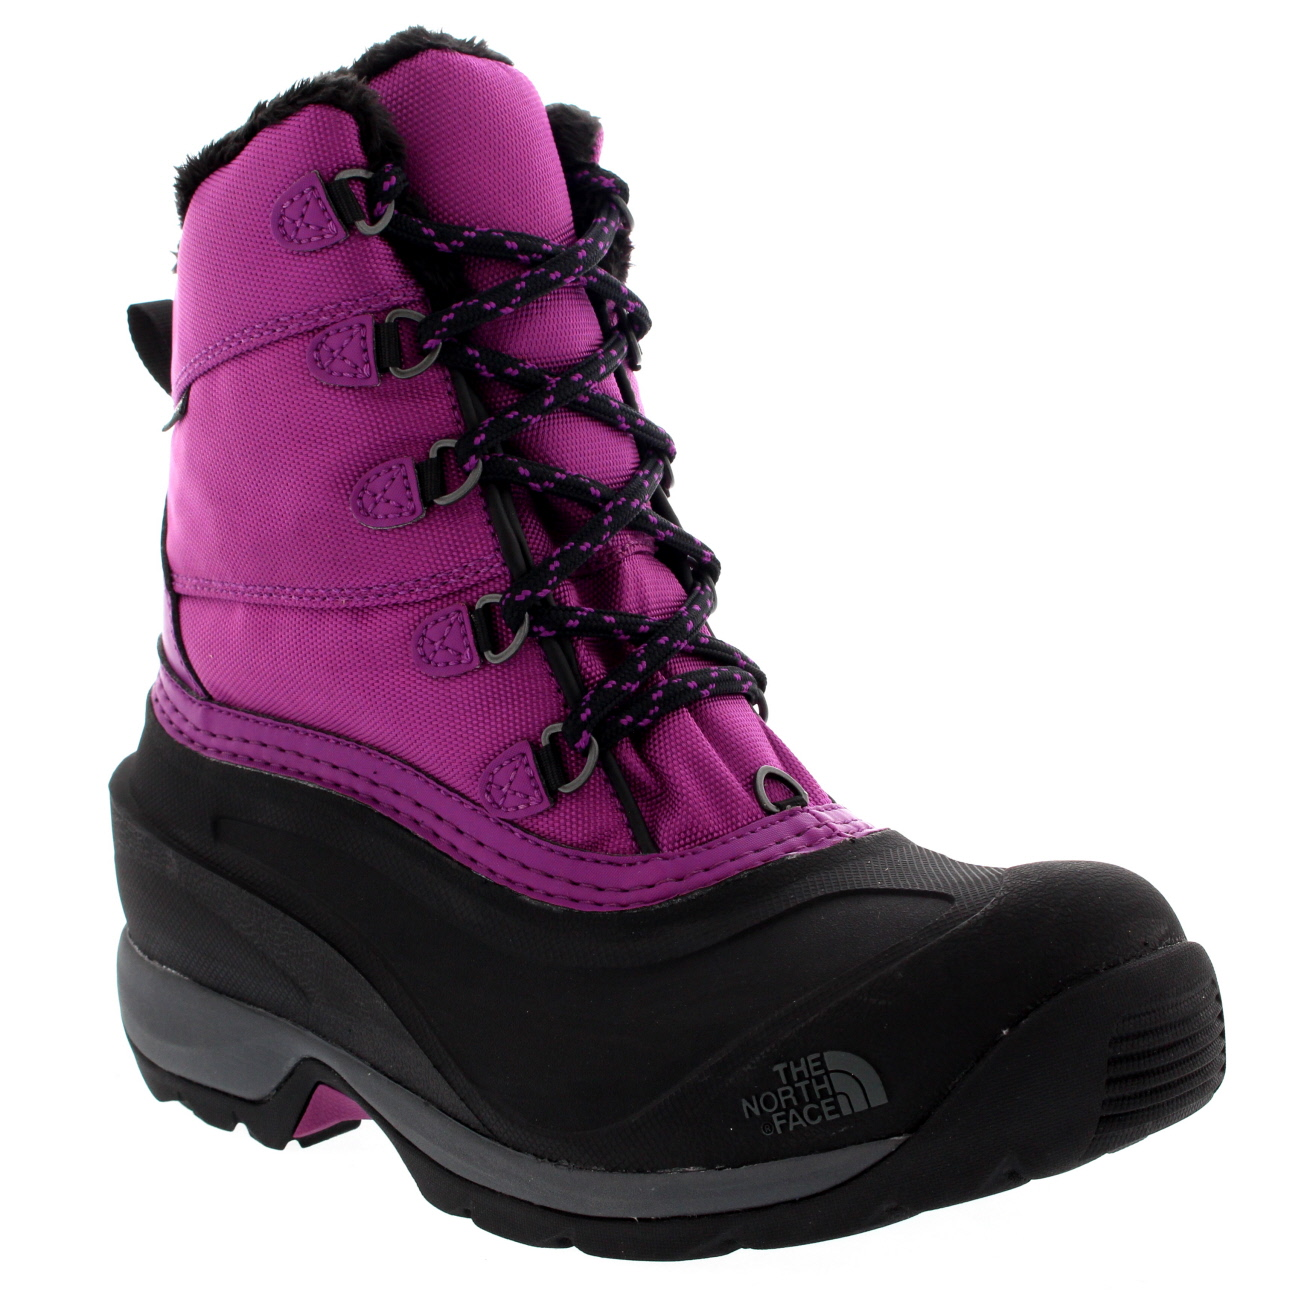 The North Face Chilkat III Nylon